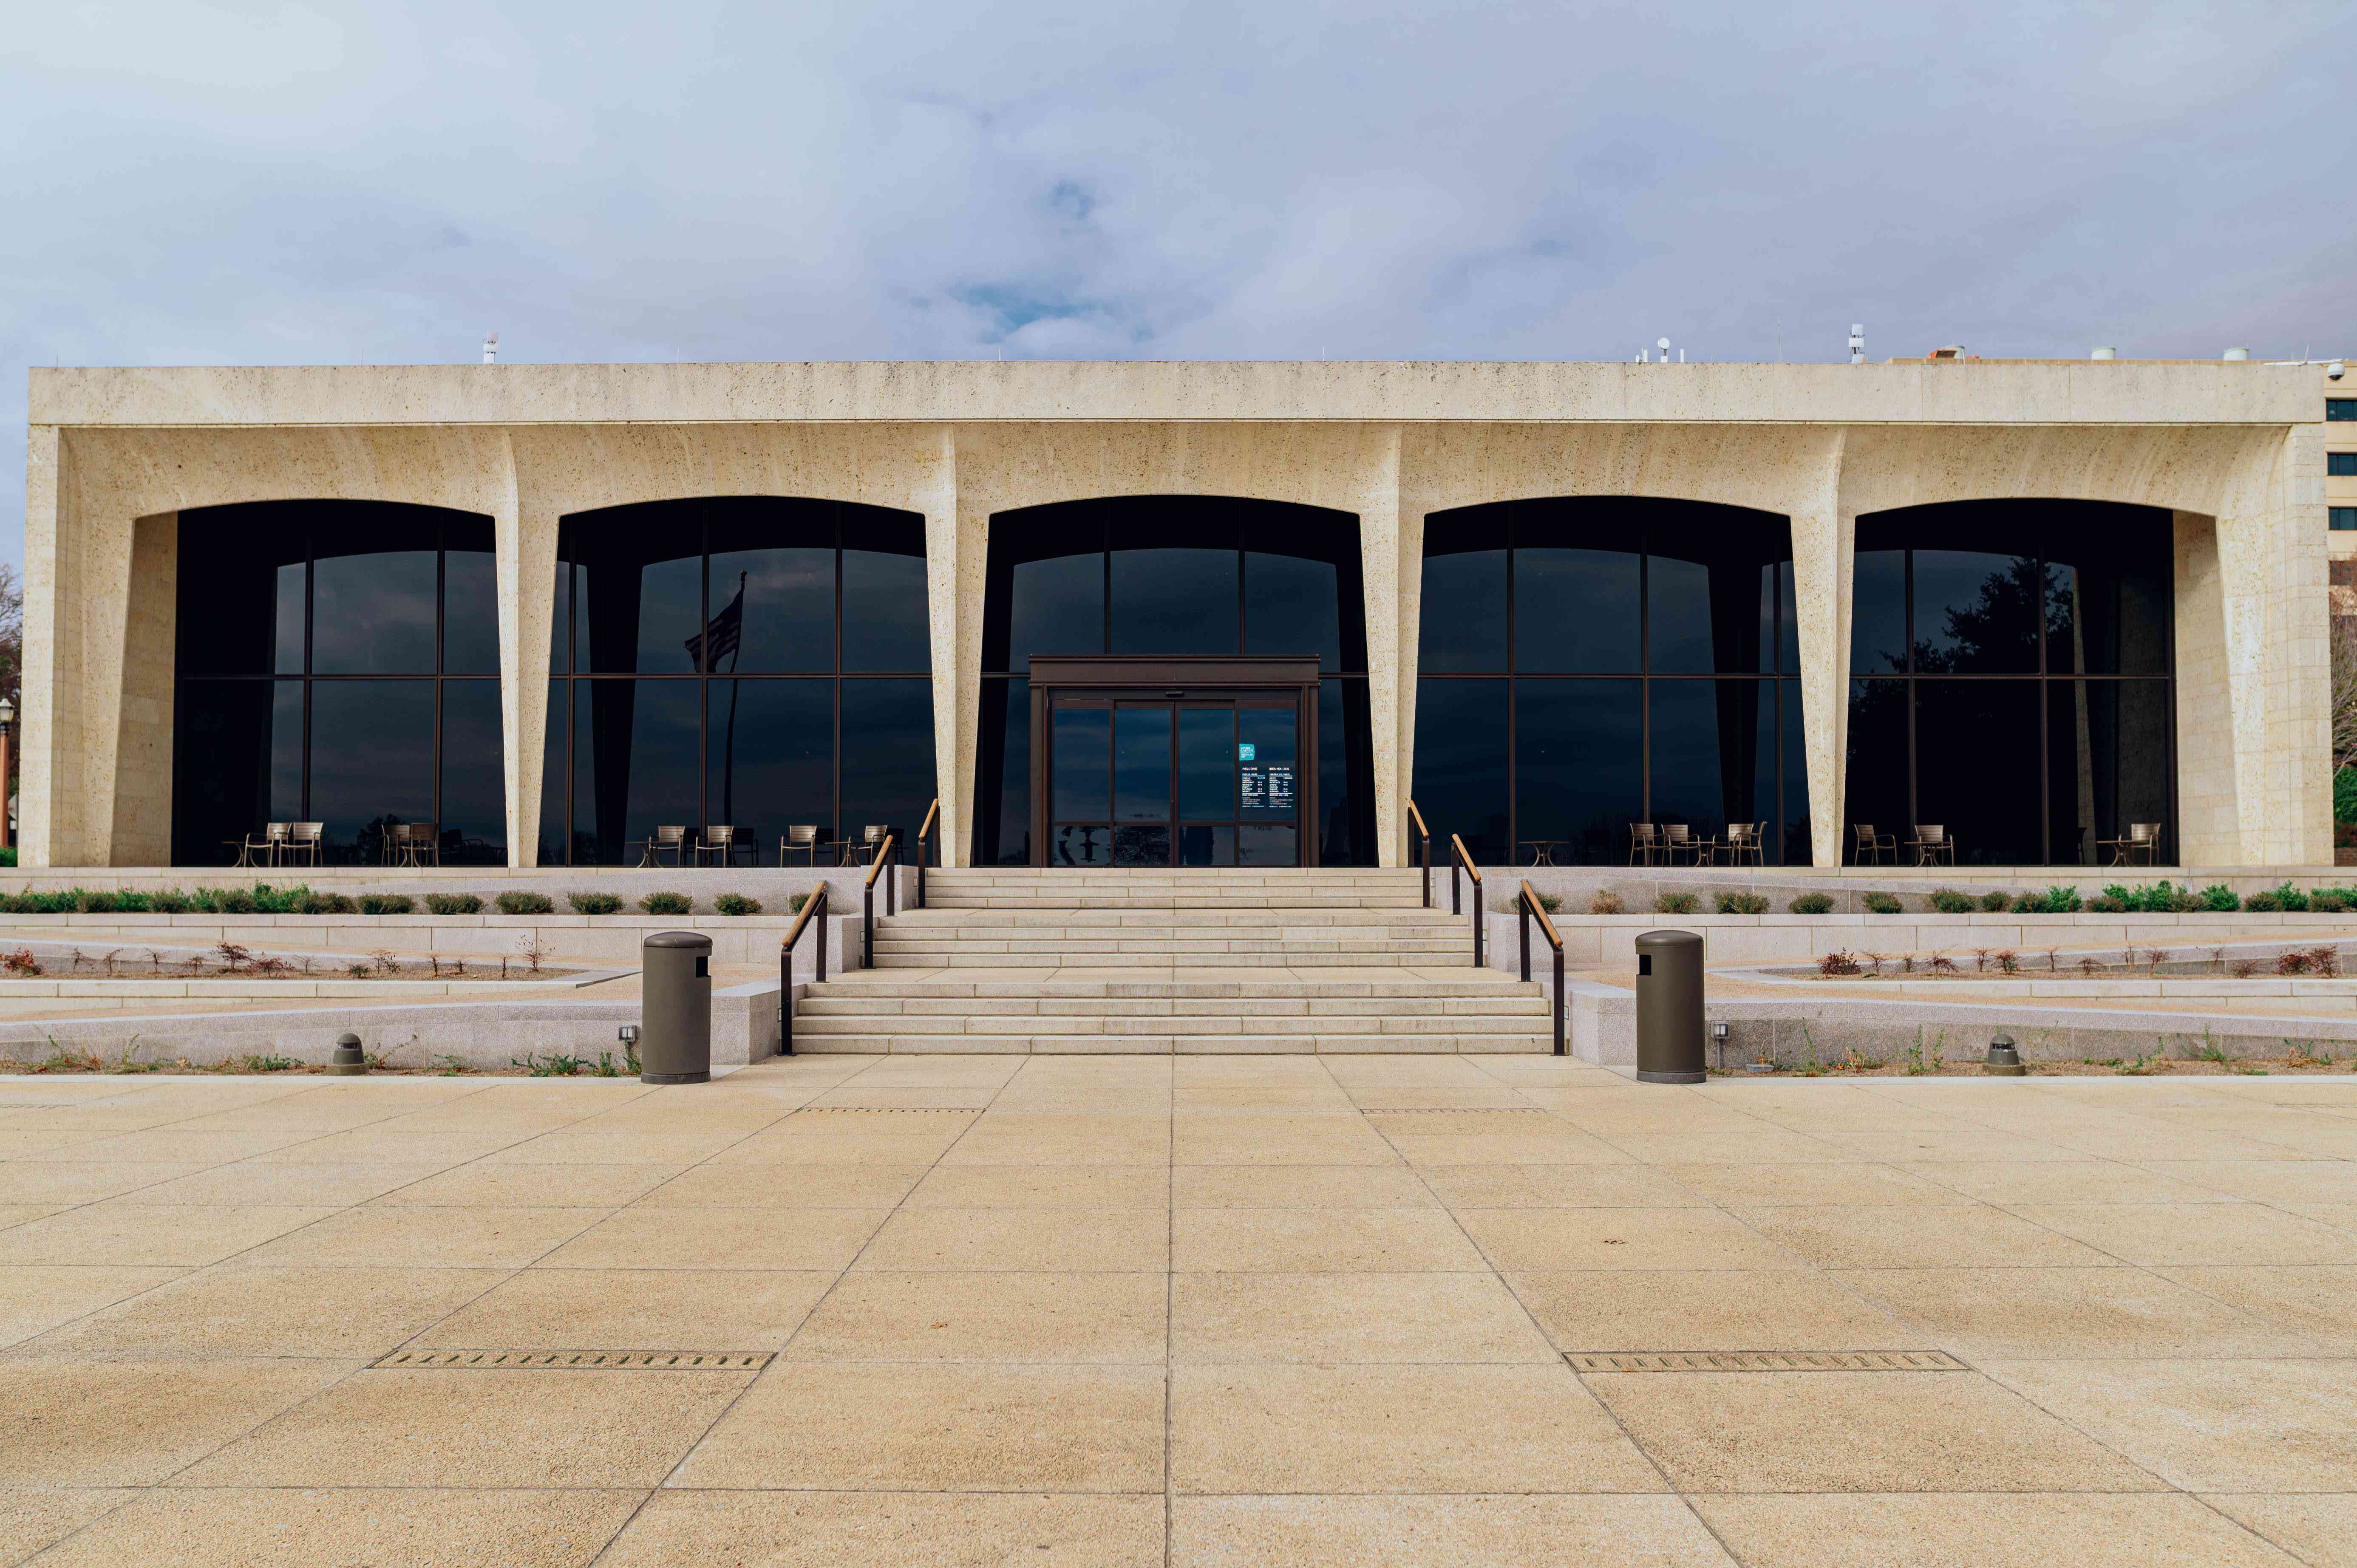 Amon Carter Museum in Fort Worth, TX